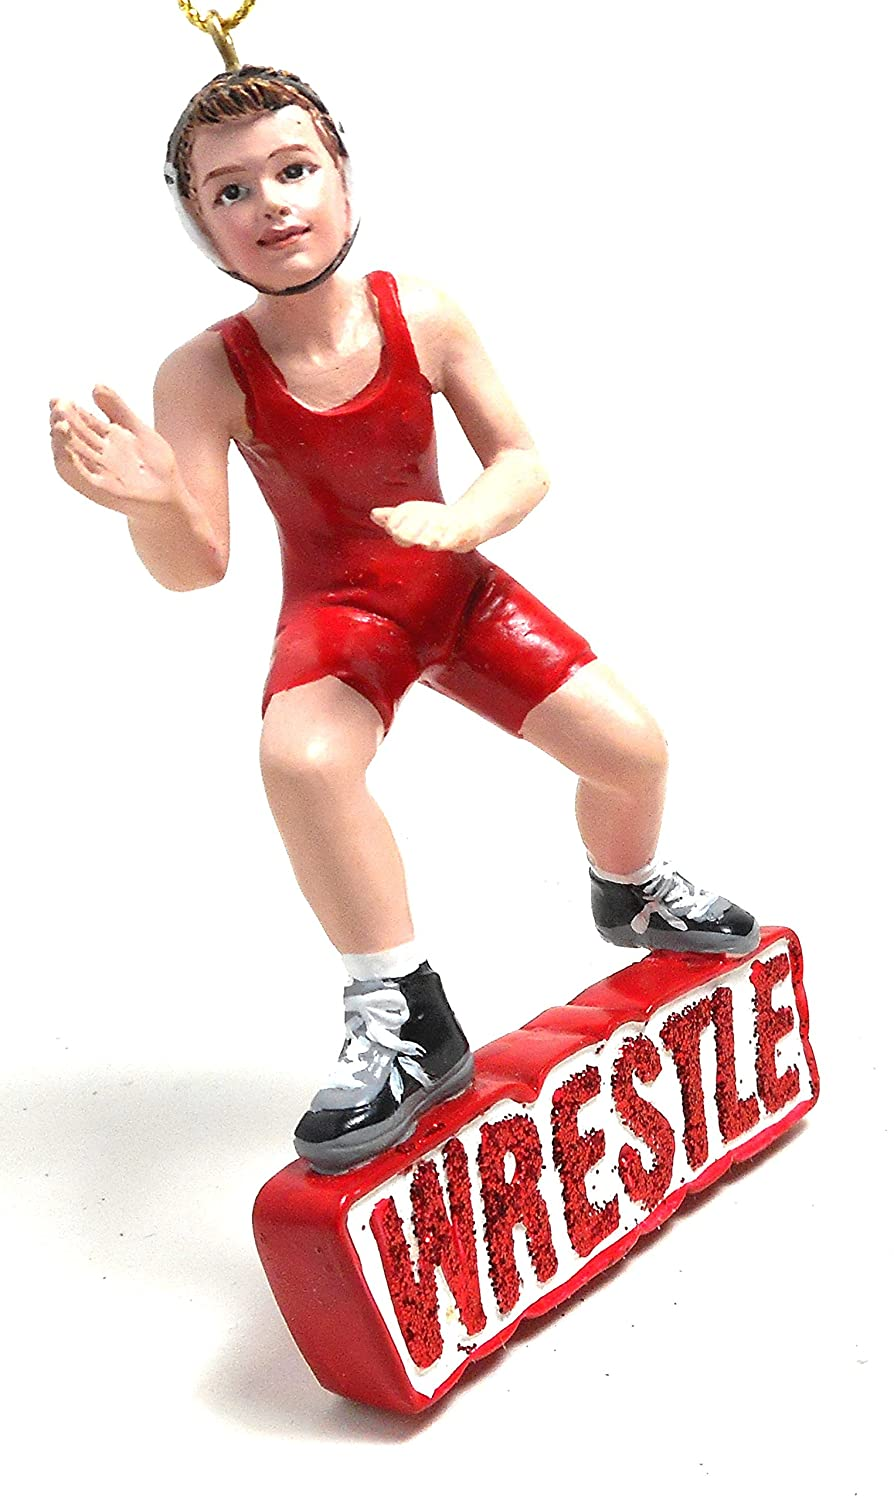 Amazon: Kurt Adler Wrestling Boy Christmas Ornament: Home & Kitchen